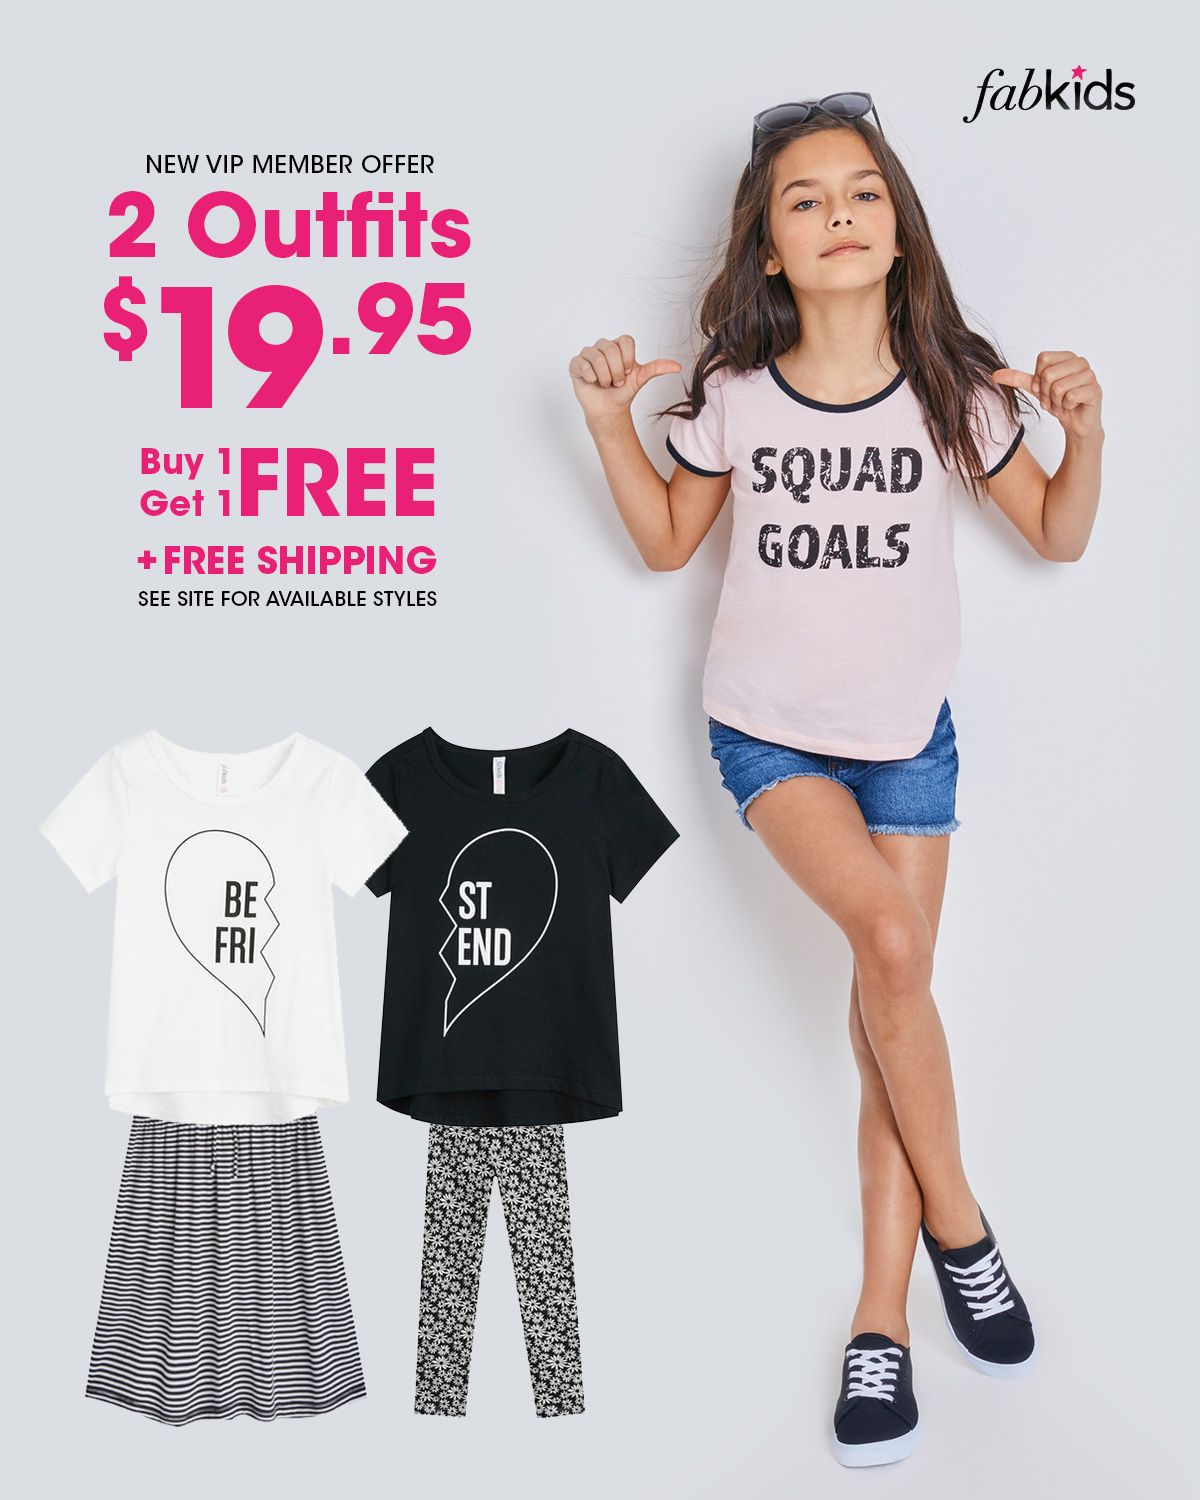 0eadd6d7 New Outfits are in! Get super cute styles for girls and boys at ...